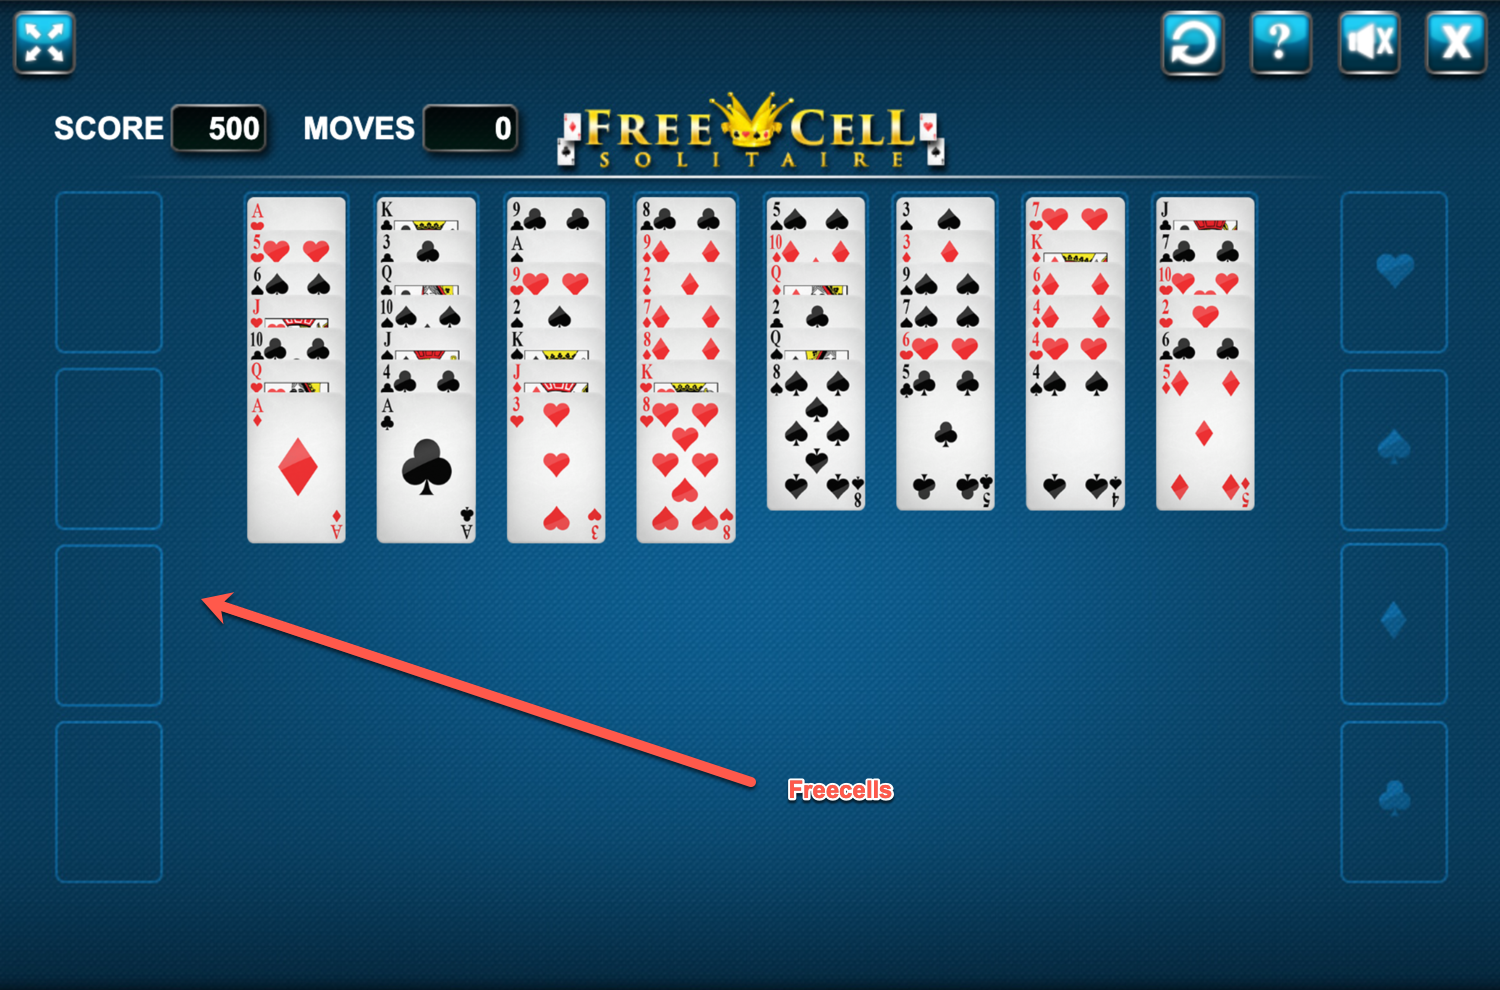 Freecell Solitaire Free Cells Screenshot.